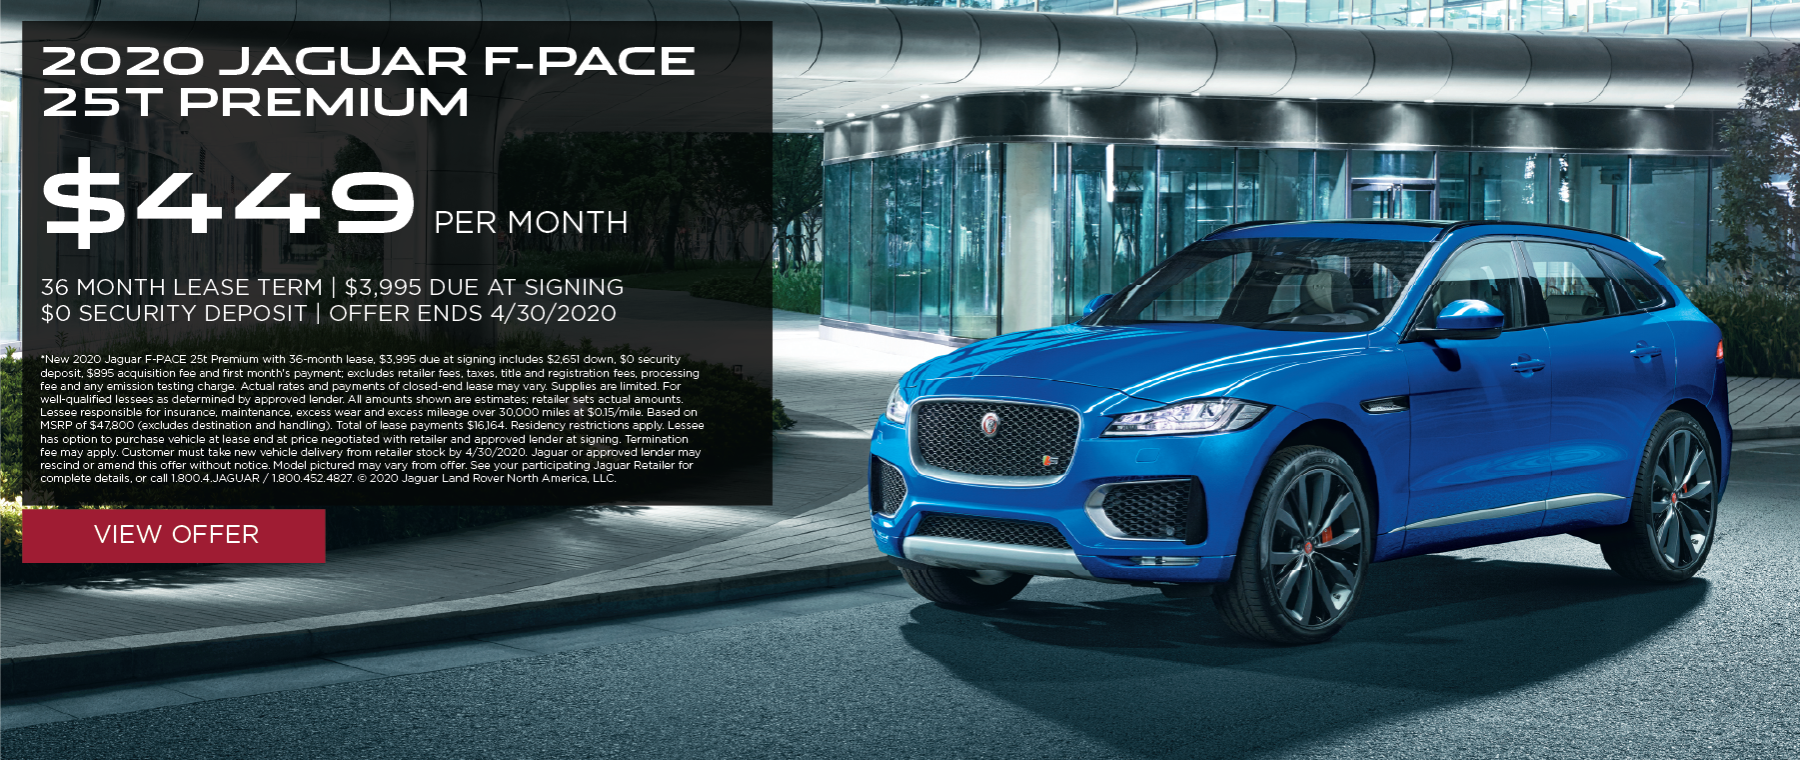 2020 JAGUAR F-PACE 25T PREMIUM. $449 PER MONTH. 36 MONTH LEASE TERM. $3,995 CASH DUE AT SIGNING. $0 SECURITY DEPOSIT. 10,000 MILES PER YEAR. OFFER ENDS 4/30/2020.